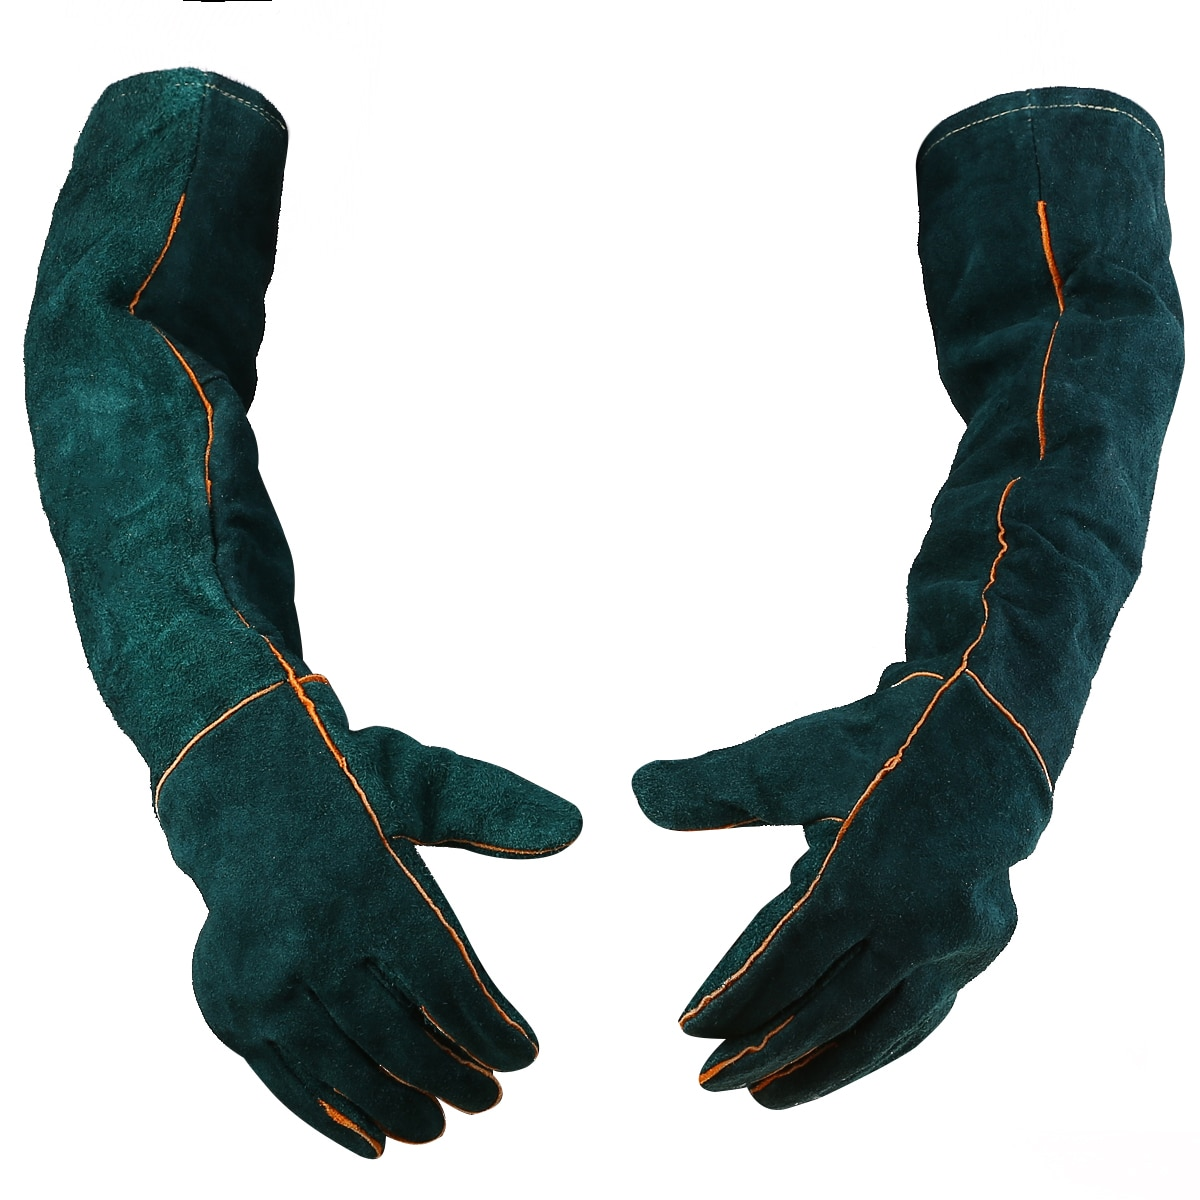 1pair Cowhide Welding Gloves Long Heat Resistant Gloves Safety Protective Leather Gear Working Glove